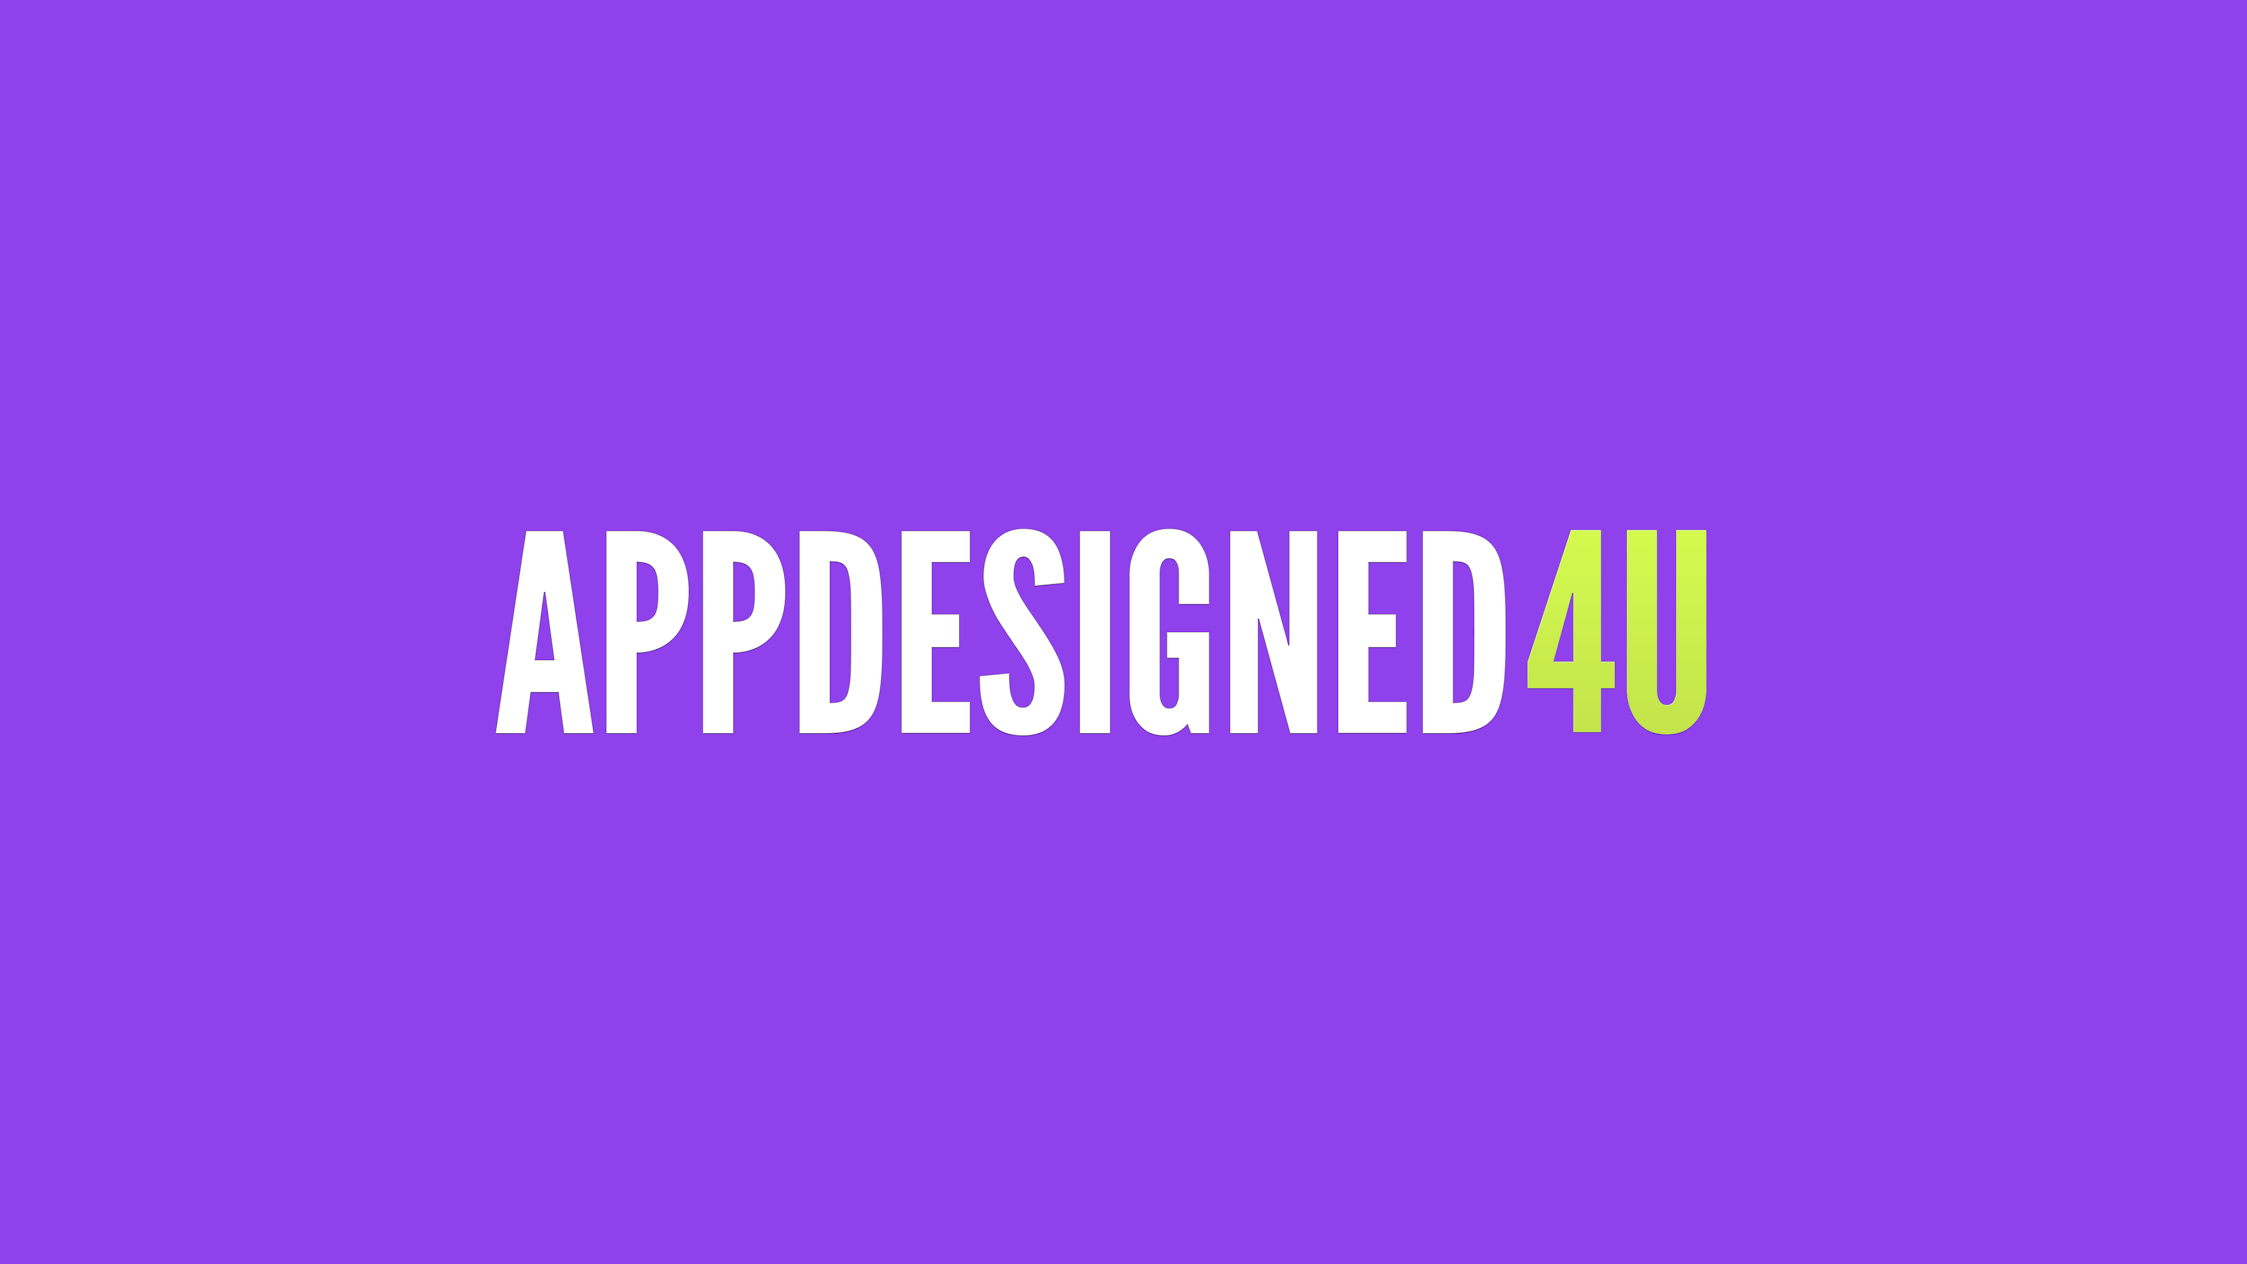 Appdesigned4u